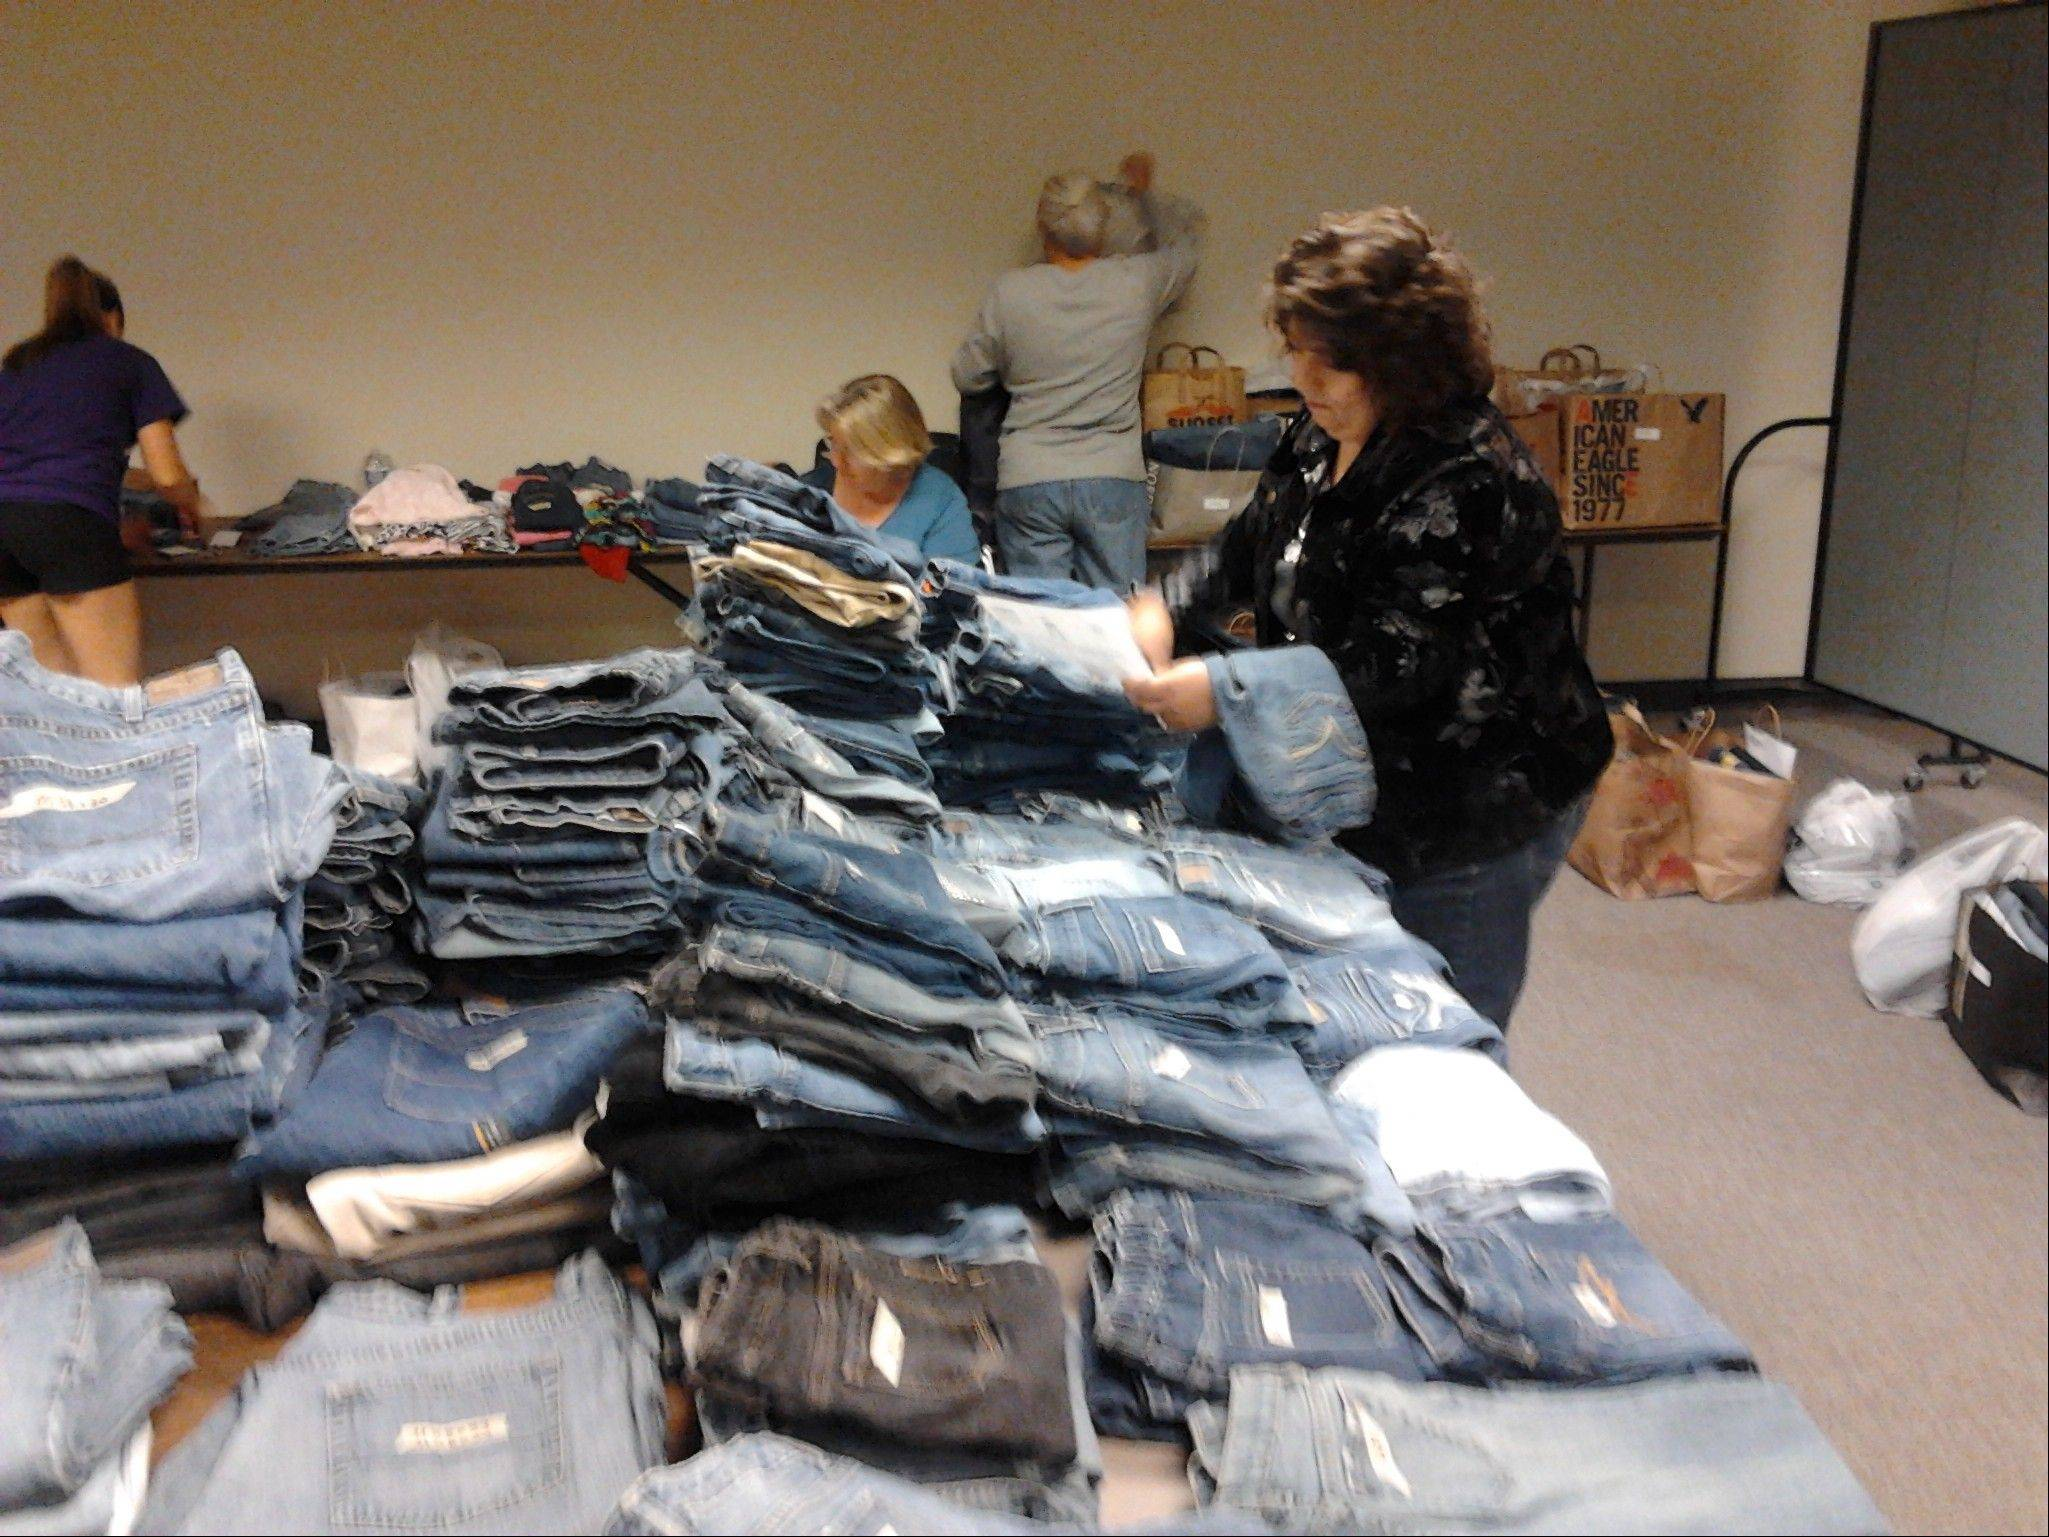 Rose Weismann was among the volunteers who distributed about 1,000 pairs of donated jeans at no cost to those in need at a weekly food pantry at St. Francis de Sales Parish in Lake Zurich.